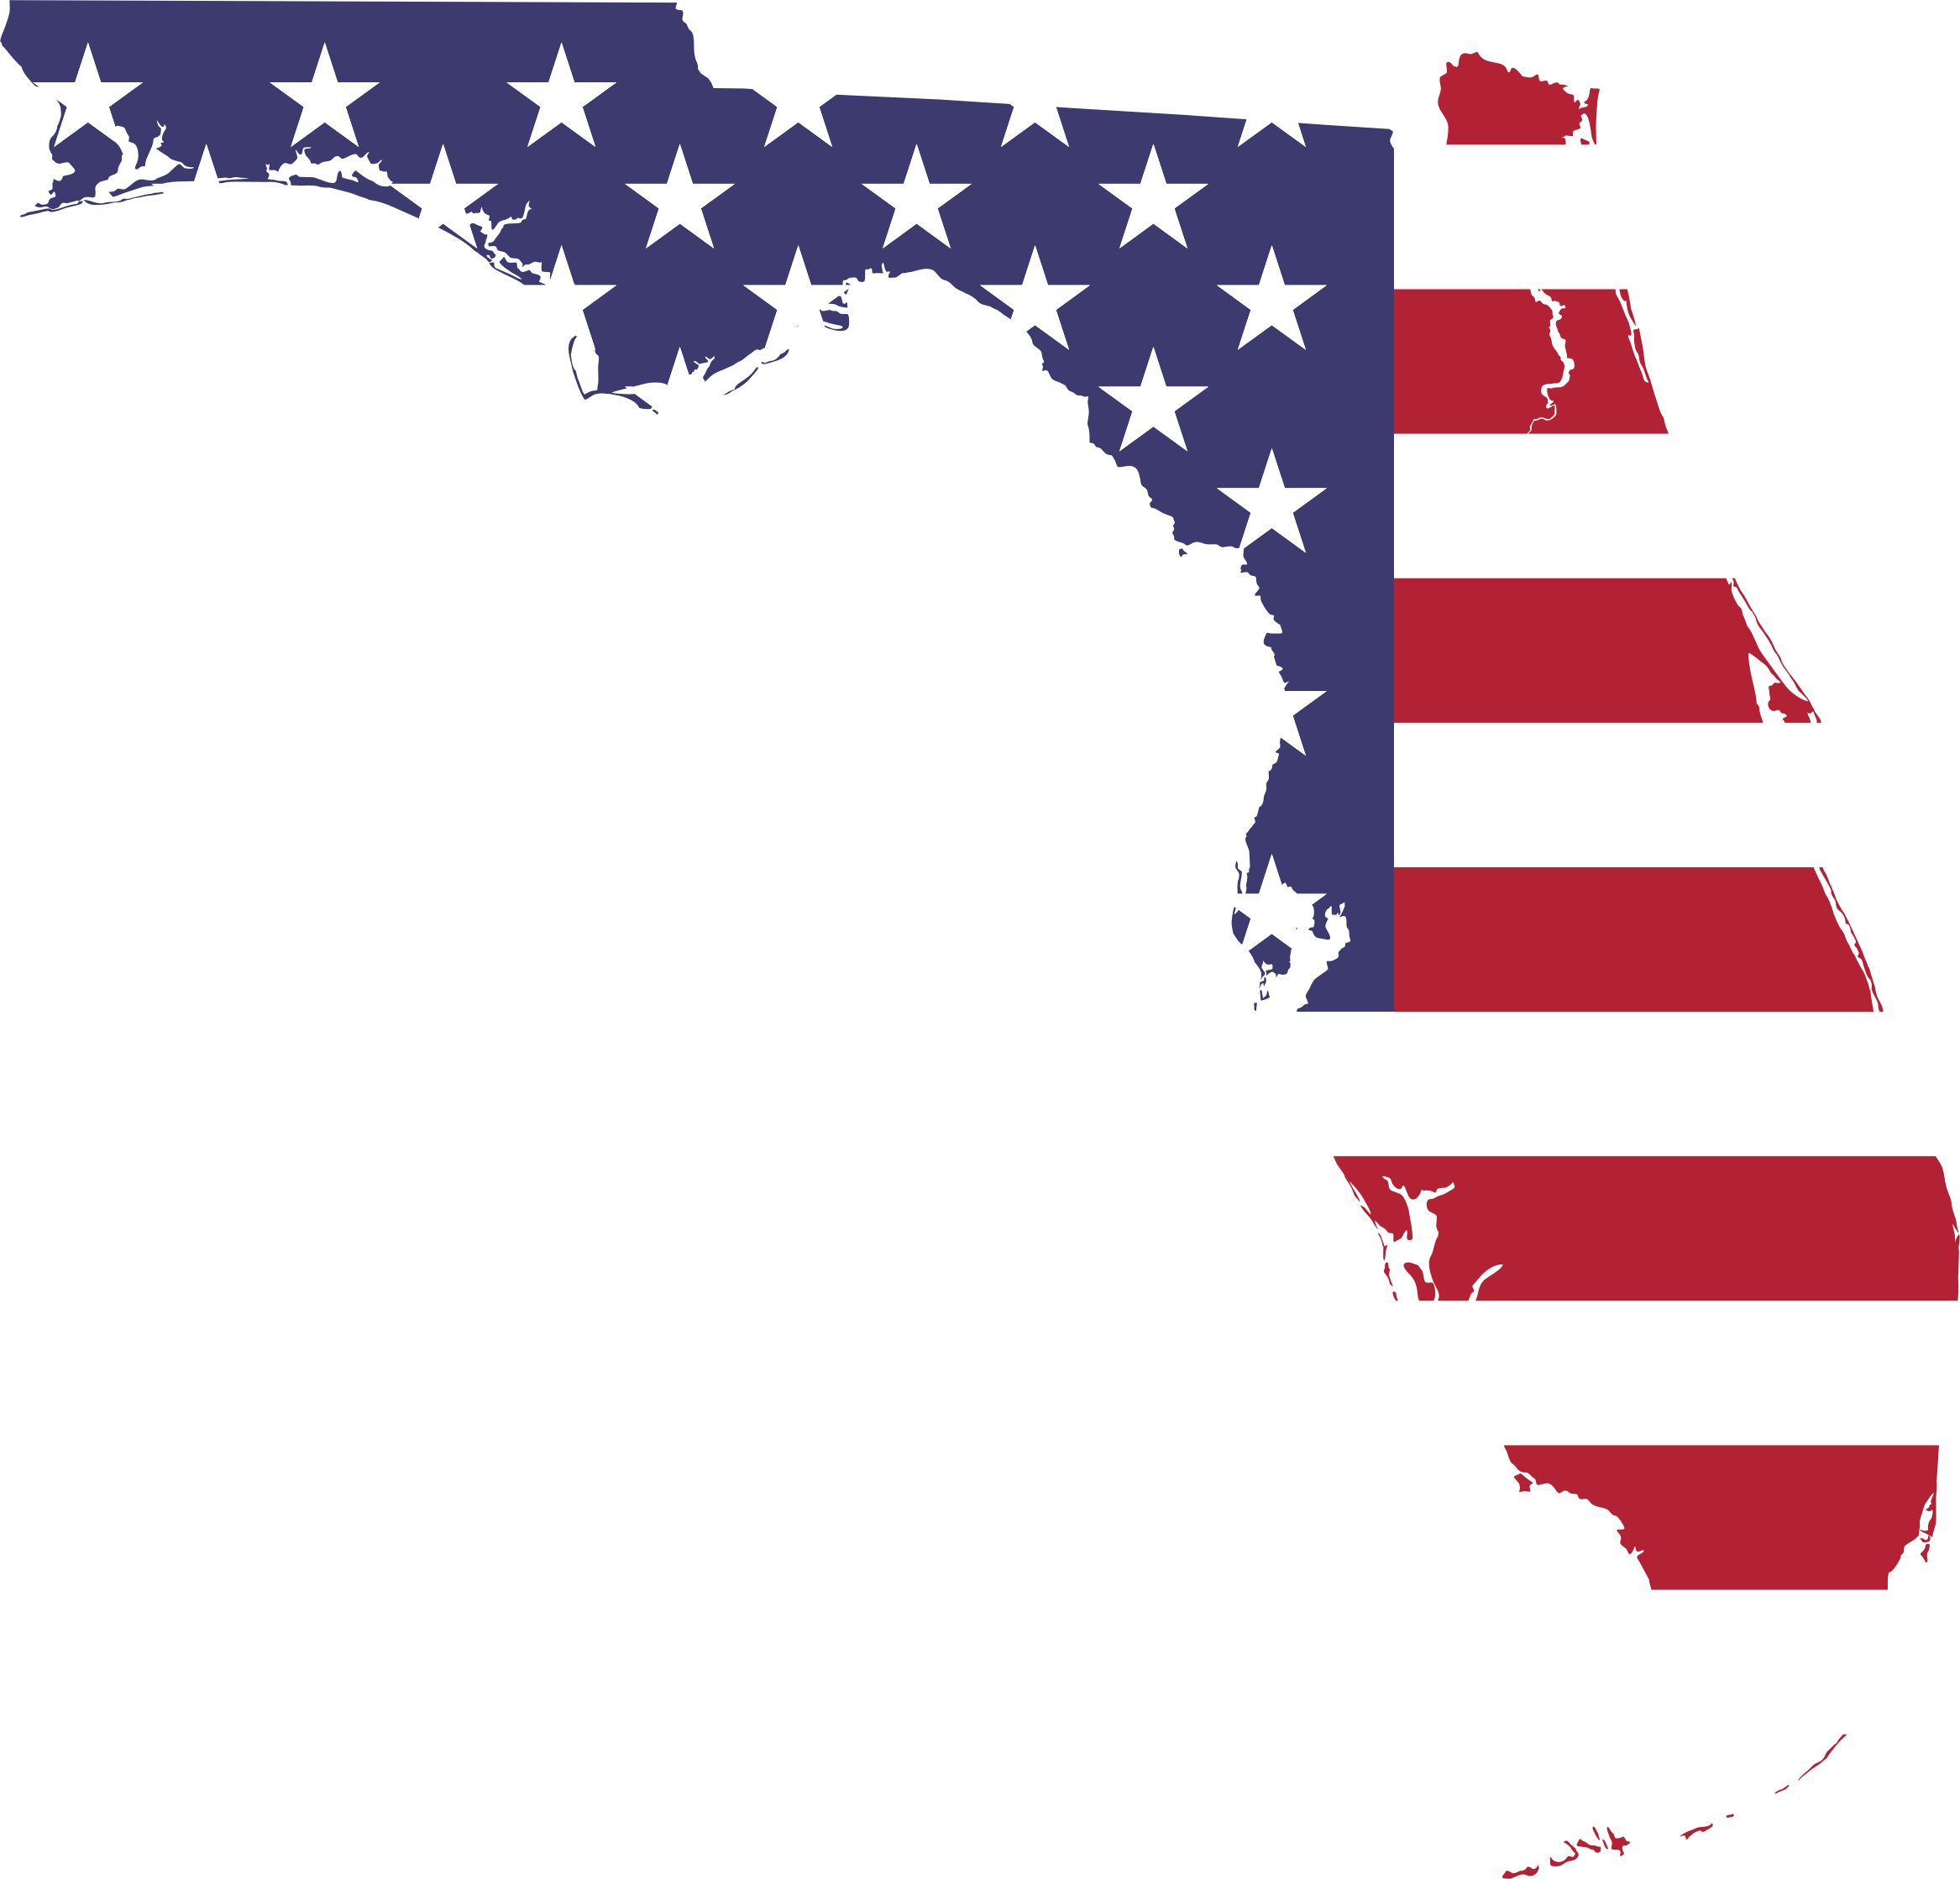 Florida map png. America flag icons free